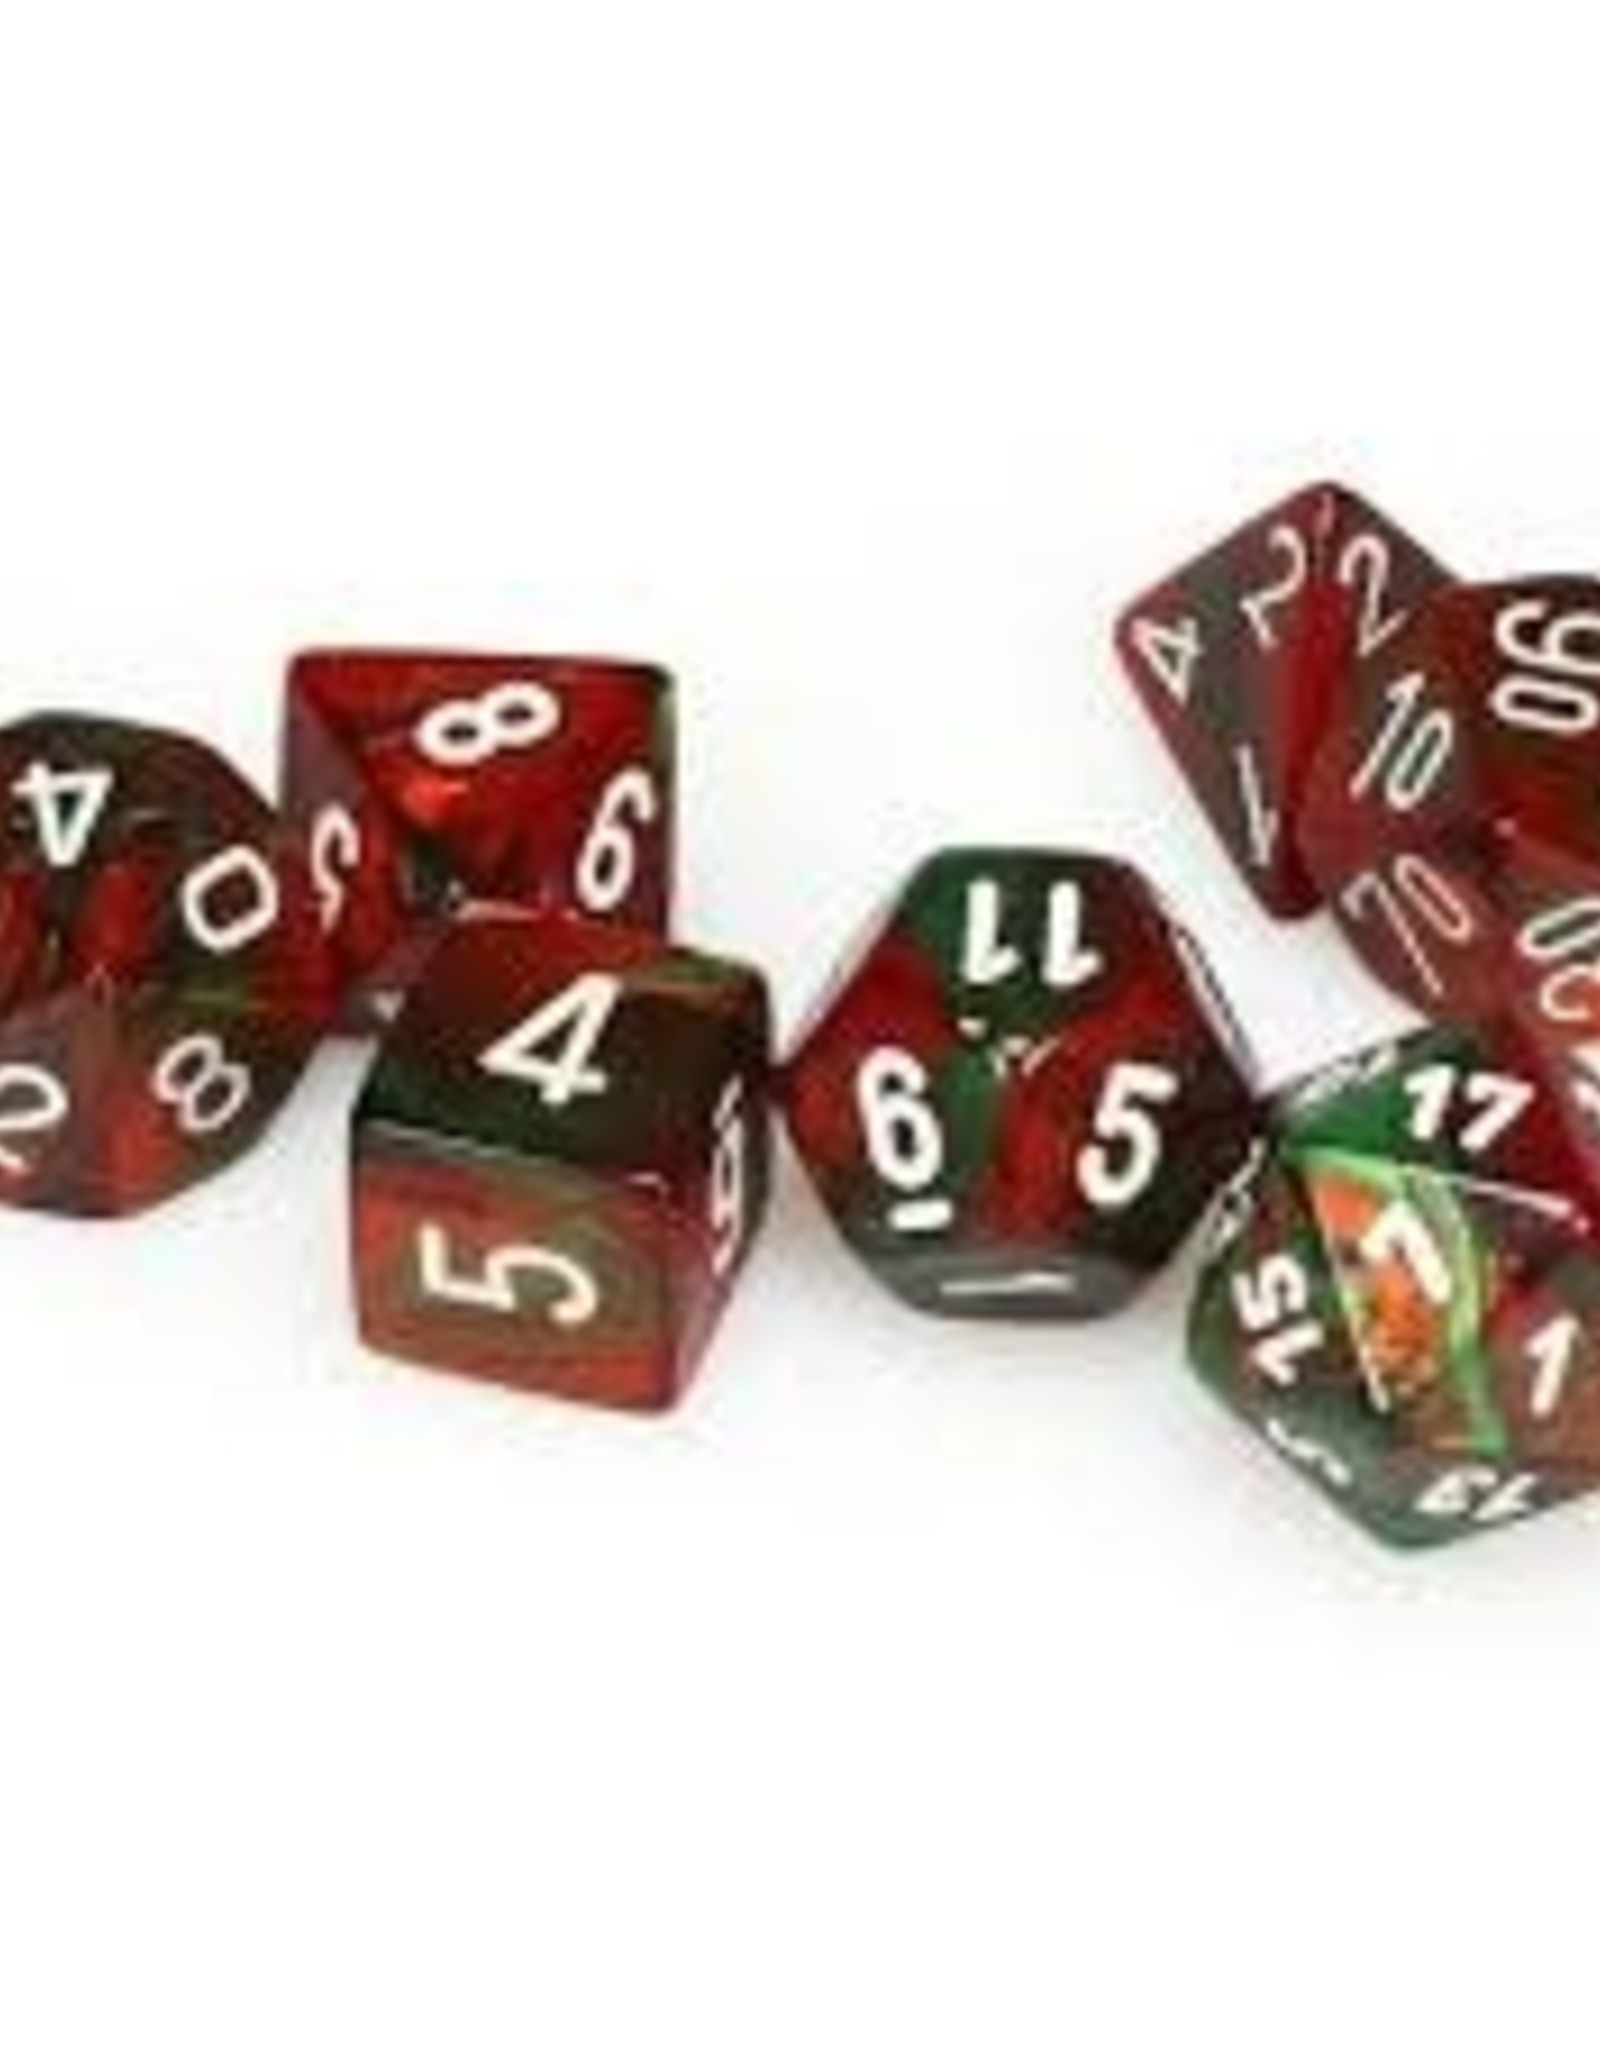 Chessex Chessex CHX26431 Dice-Gemini Green-Red/White Set, One Size, Multicolor